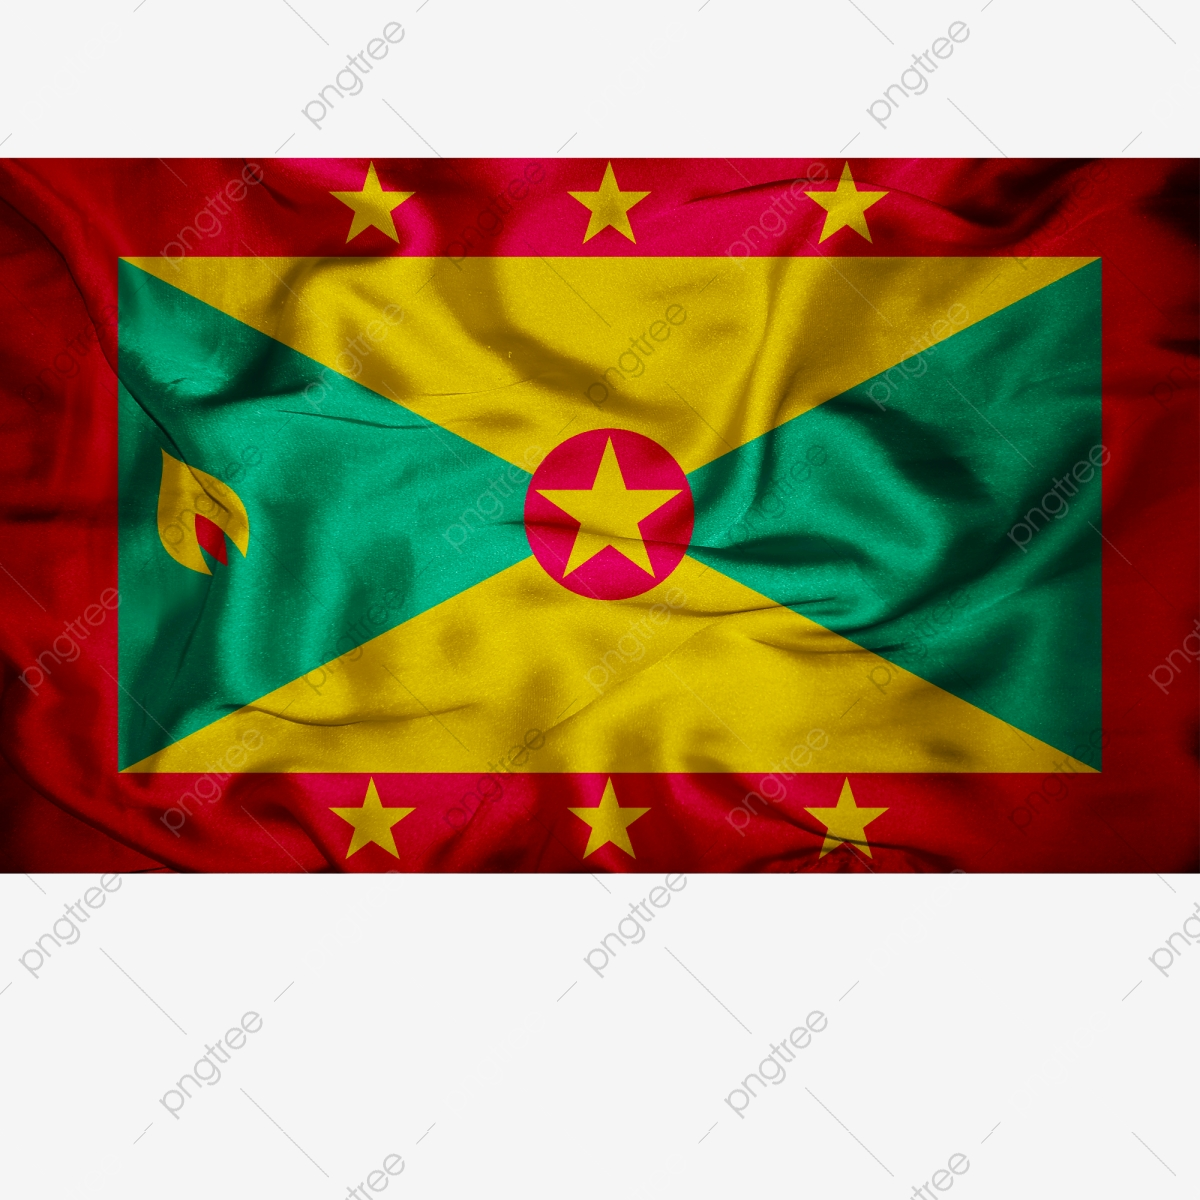 Grenada Flag Transparent With Fabric Grenada Grenada Flag Grenada Flag Vector Png Transparent Clipart Image And Psd File For Free Download